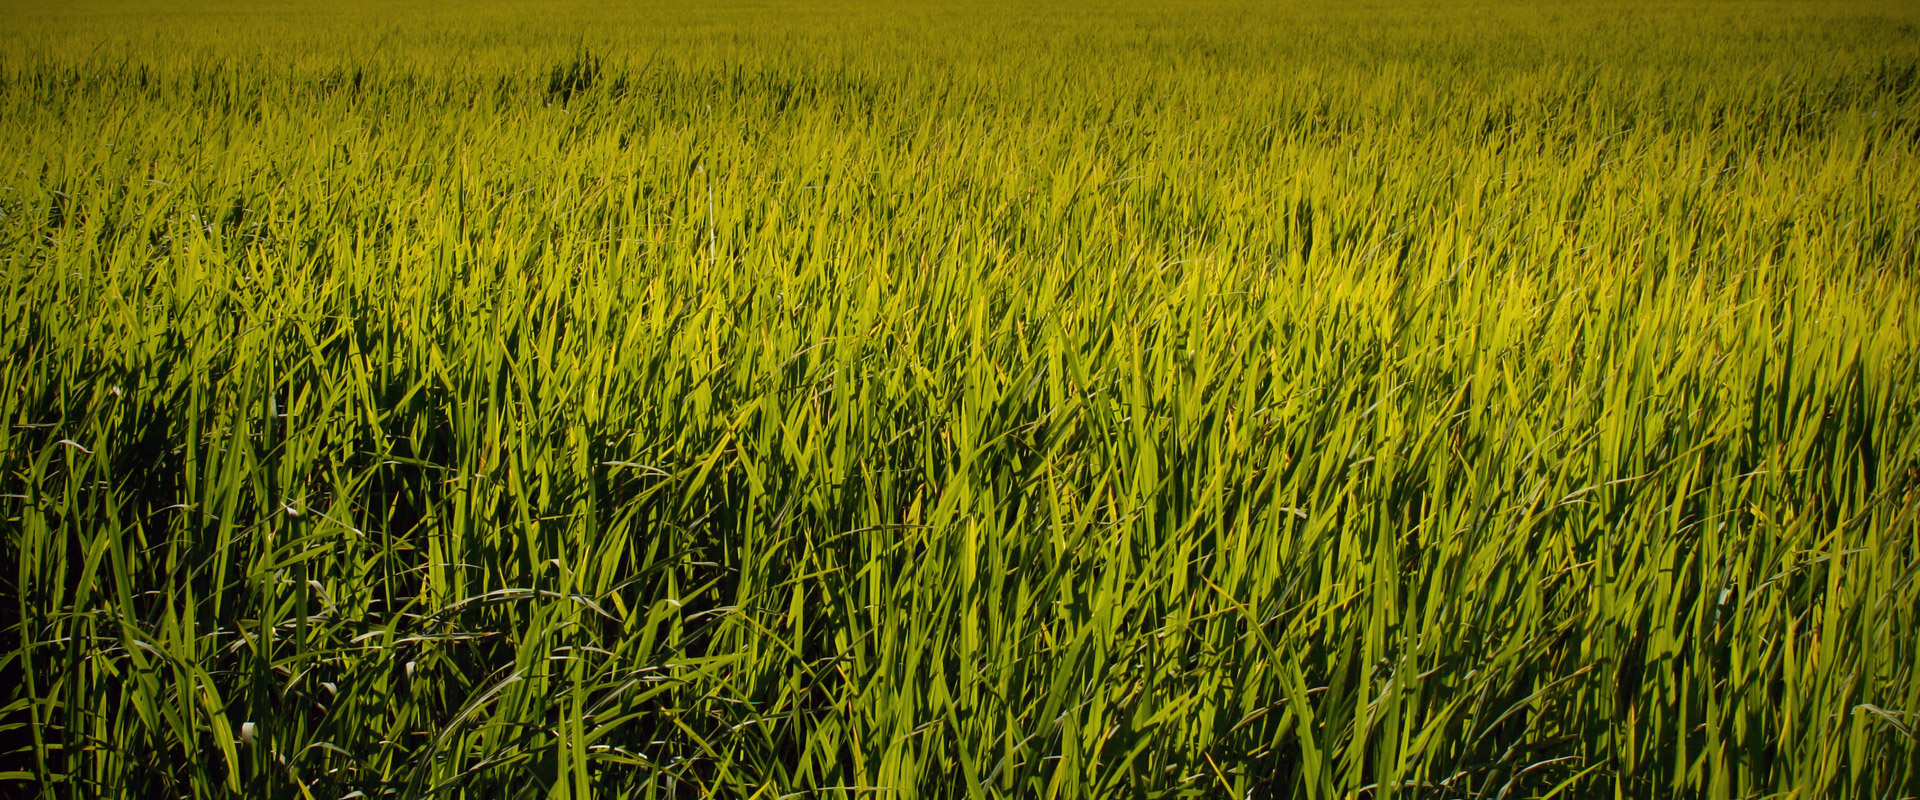 Rice field in Pego Oliva Marjal